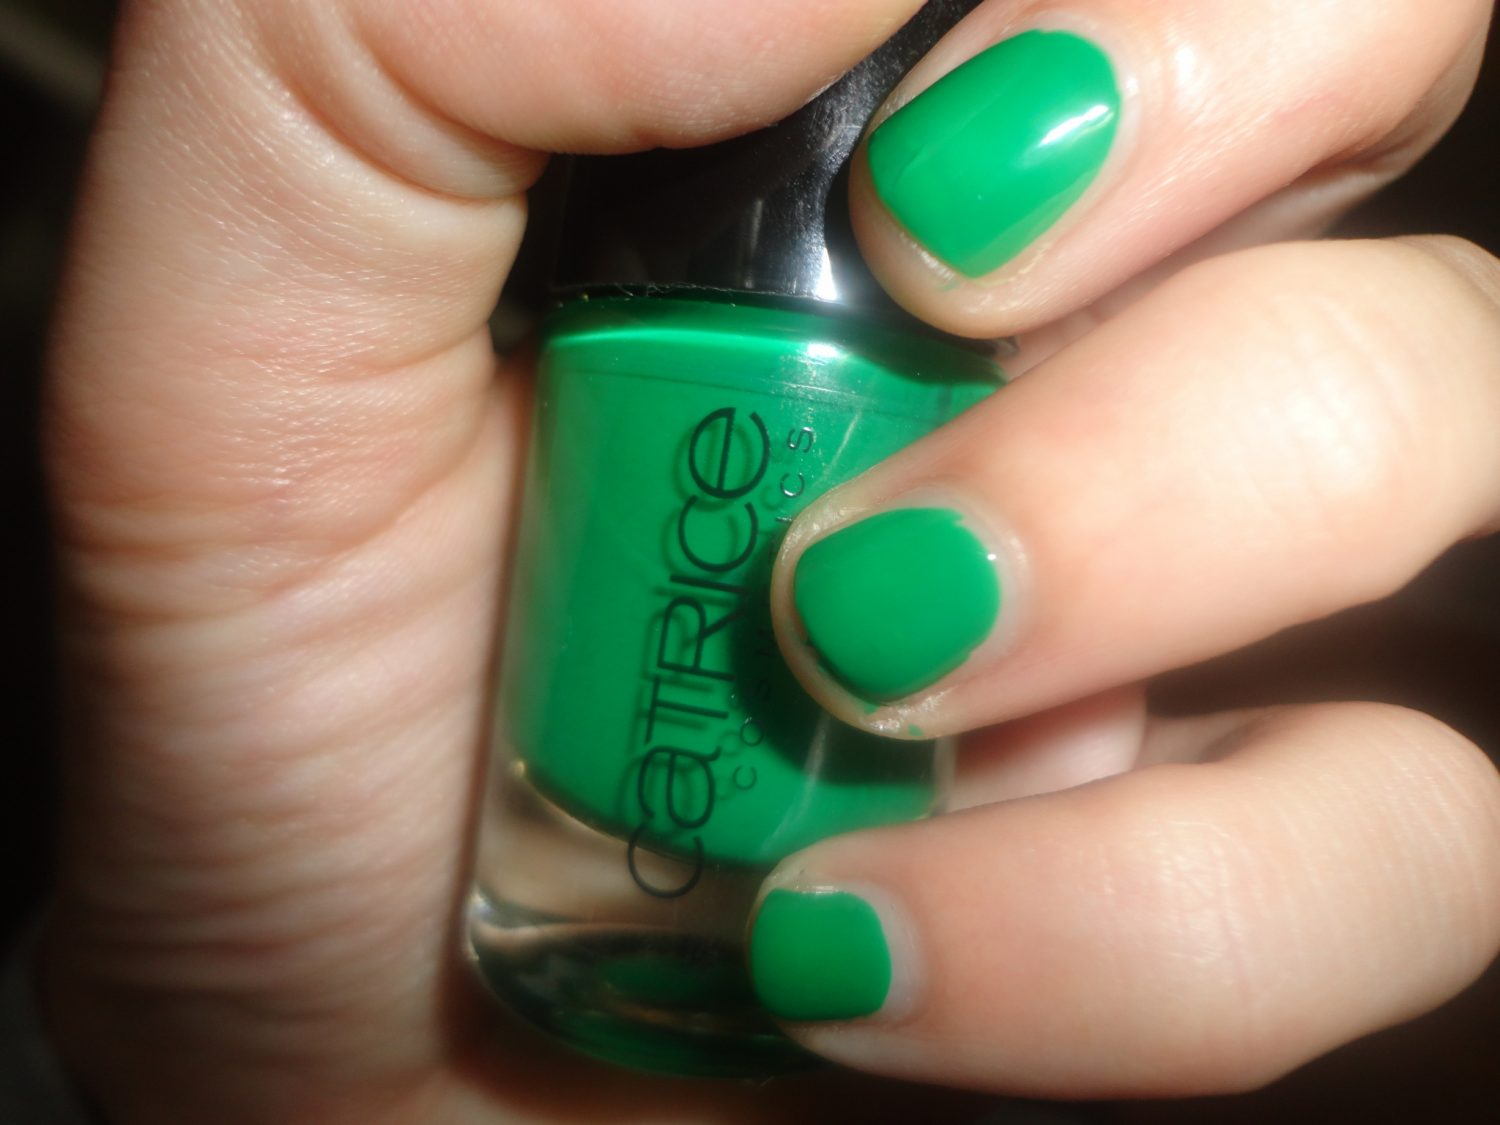 Swatch: Catrice 10 I'm Not A Greenager